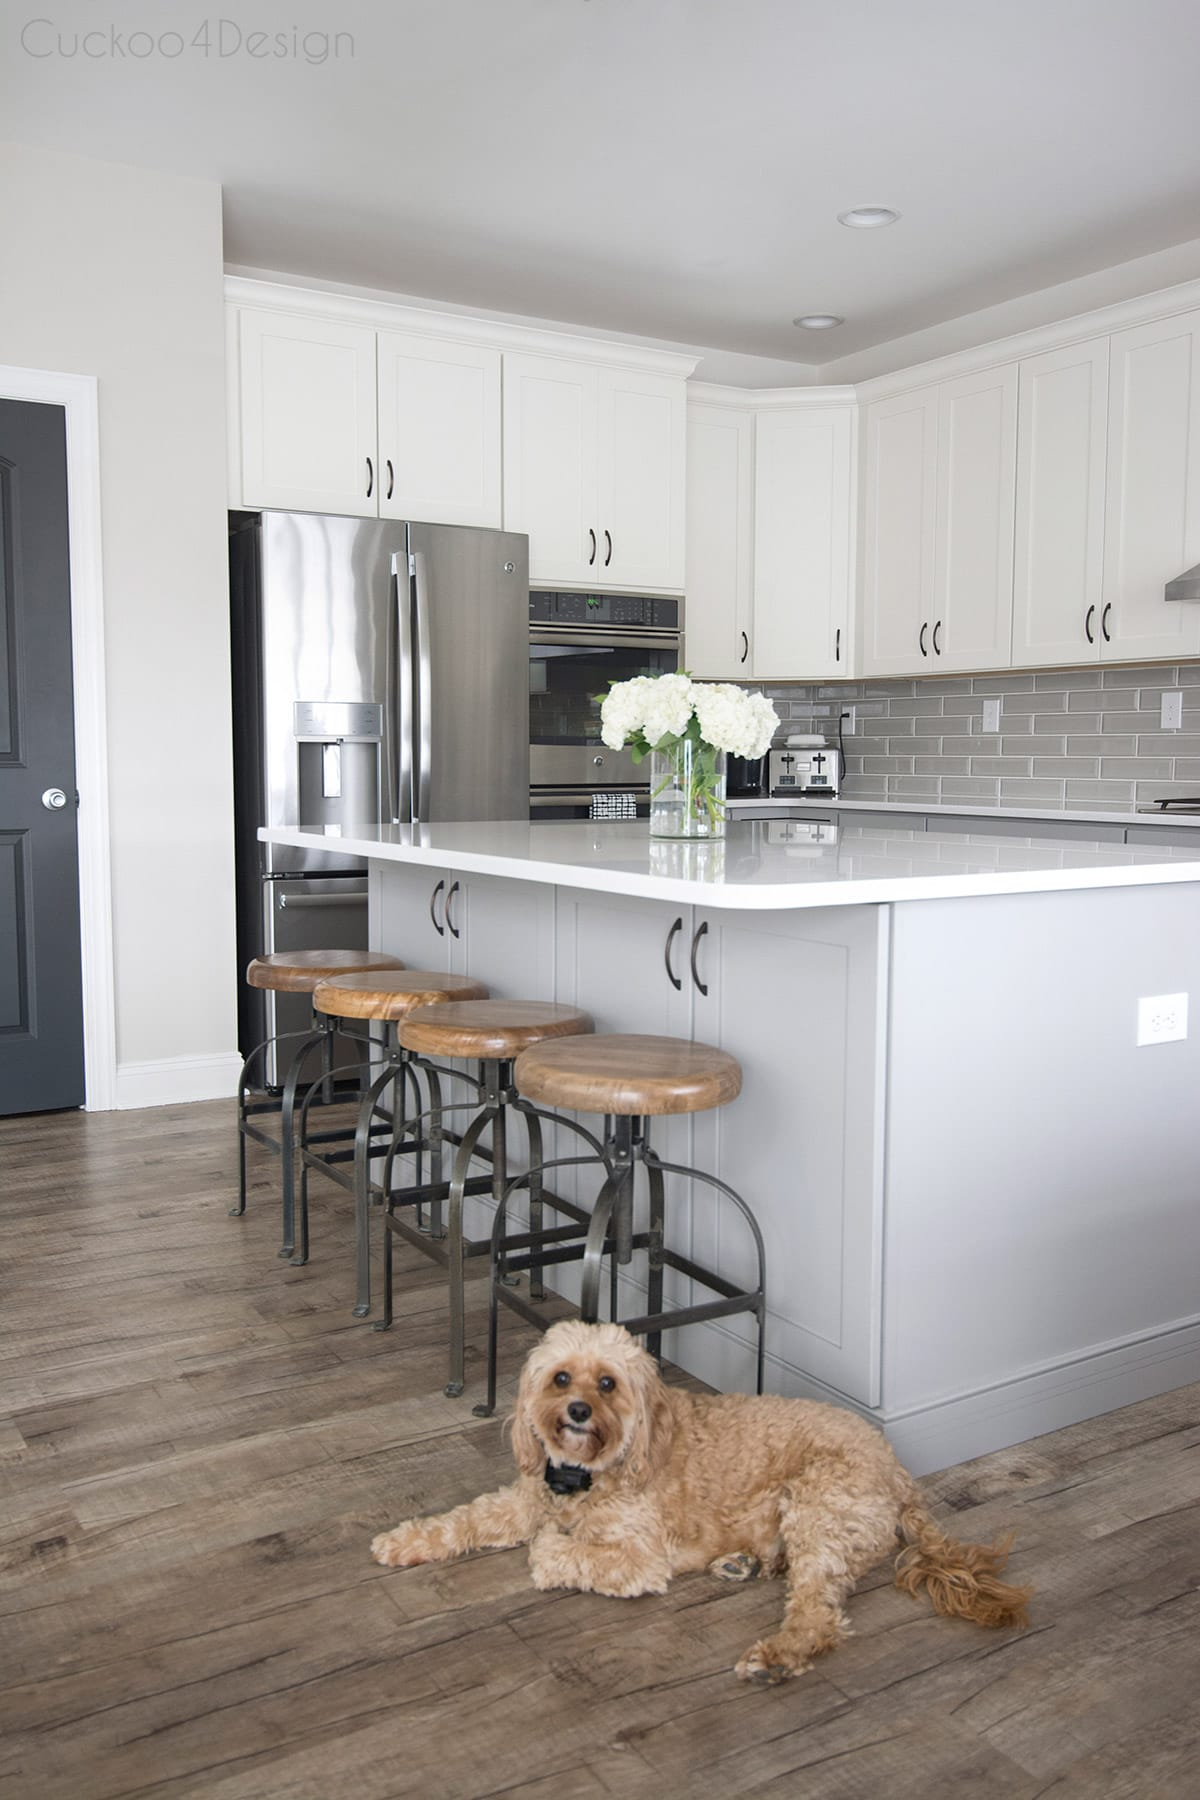 dog inn grey and white kitchen